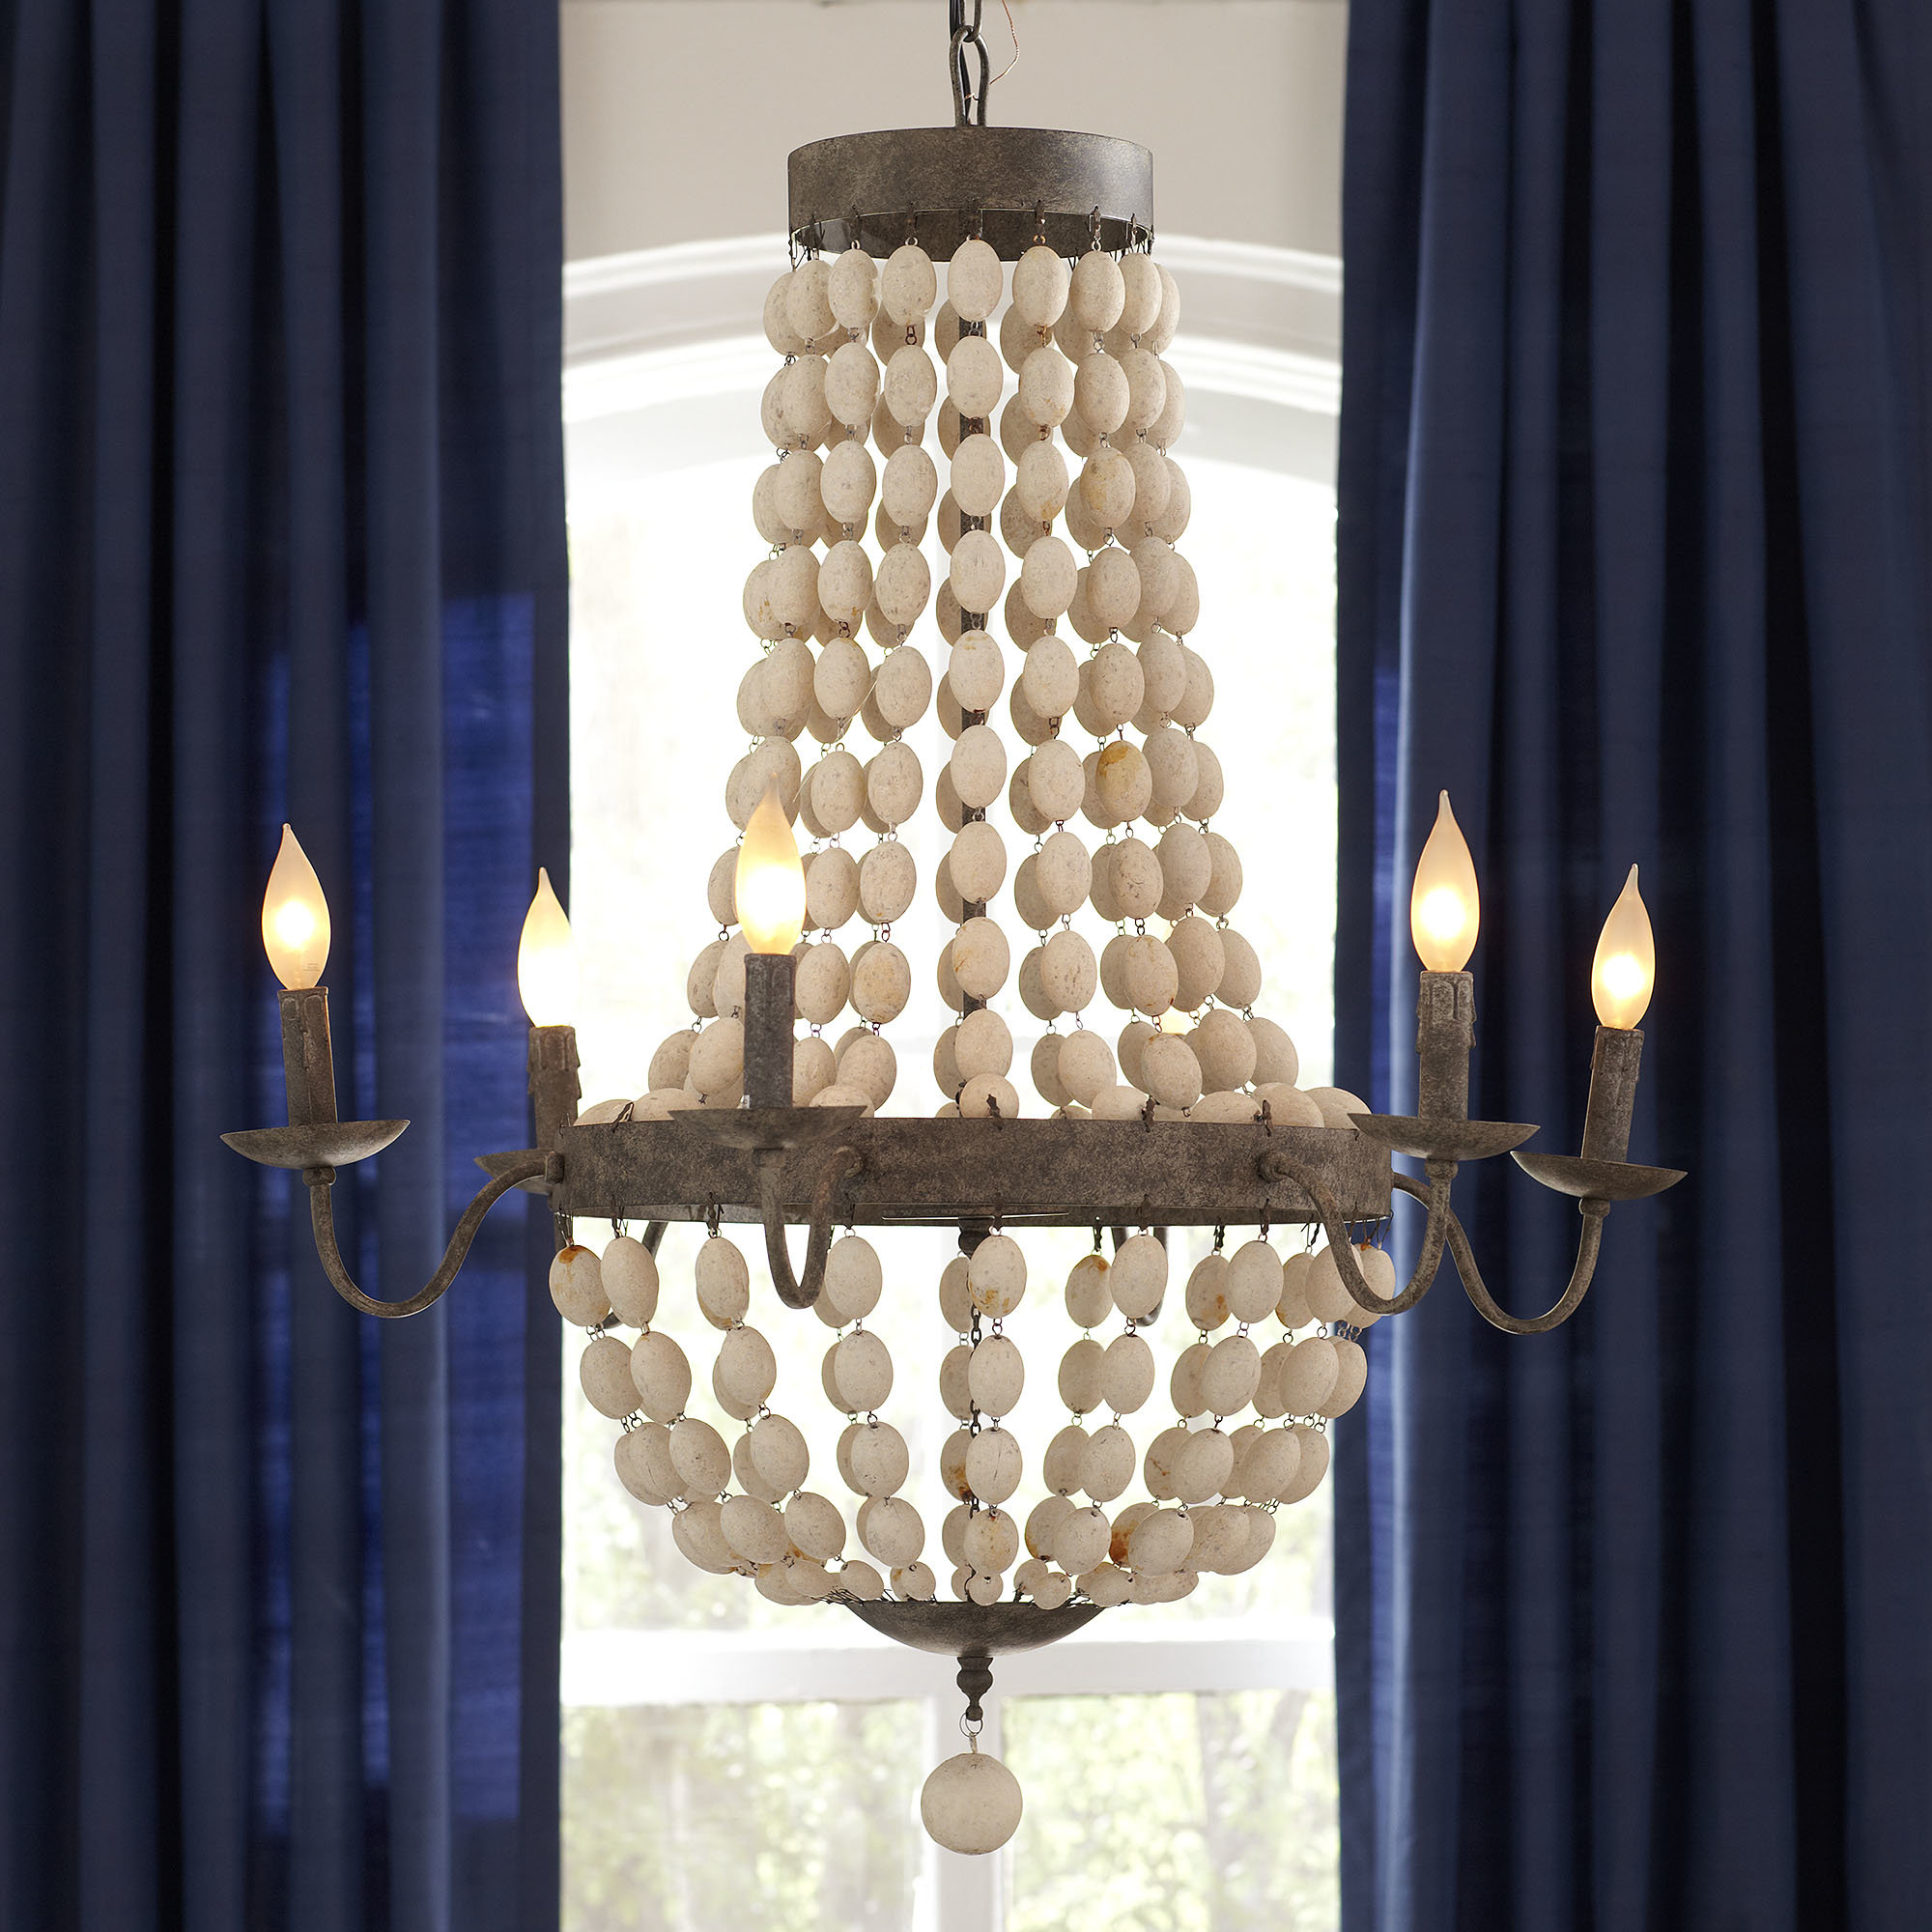 Bargas 6 Light Empire Chandelier Intended For 2020 Duron 5 Light Empire Chandeliers (View 8 of 25)